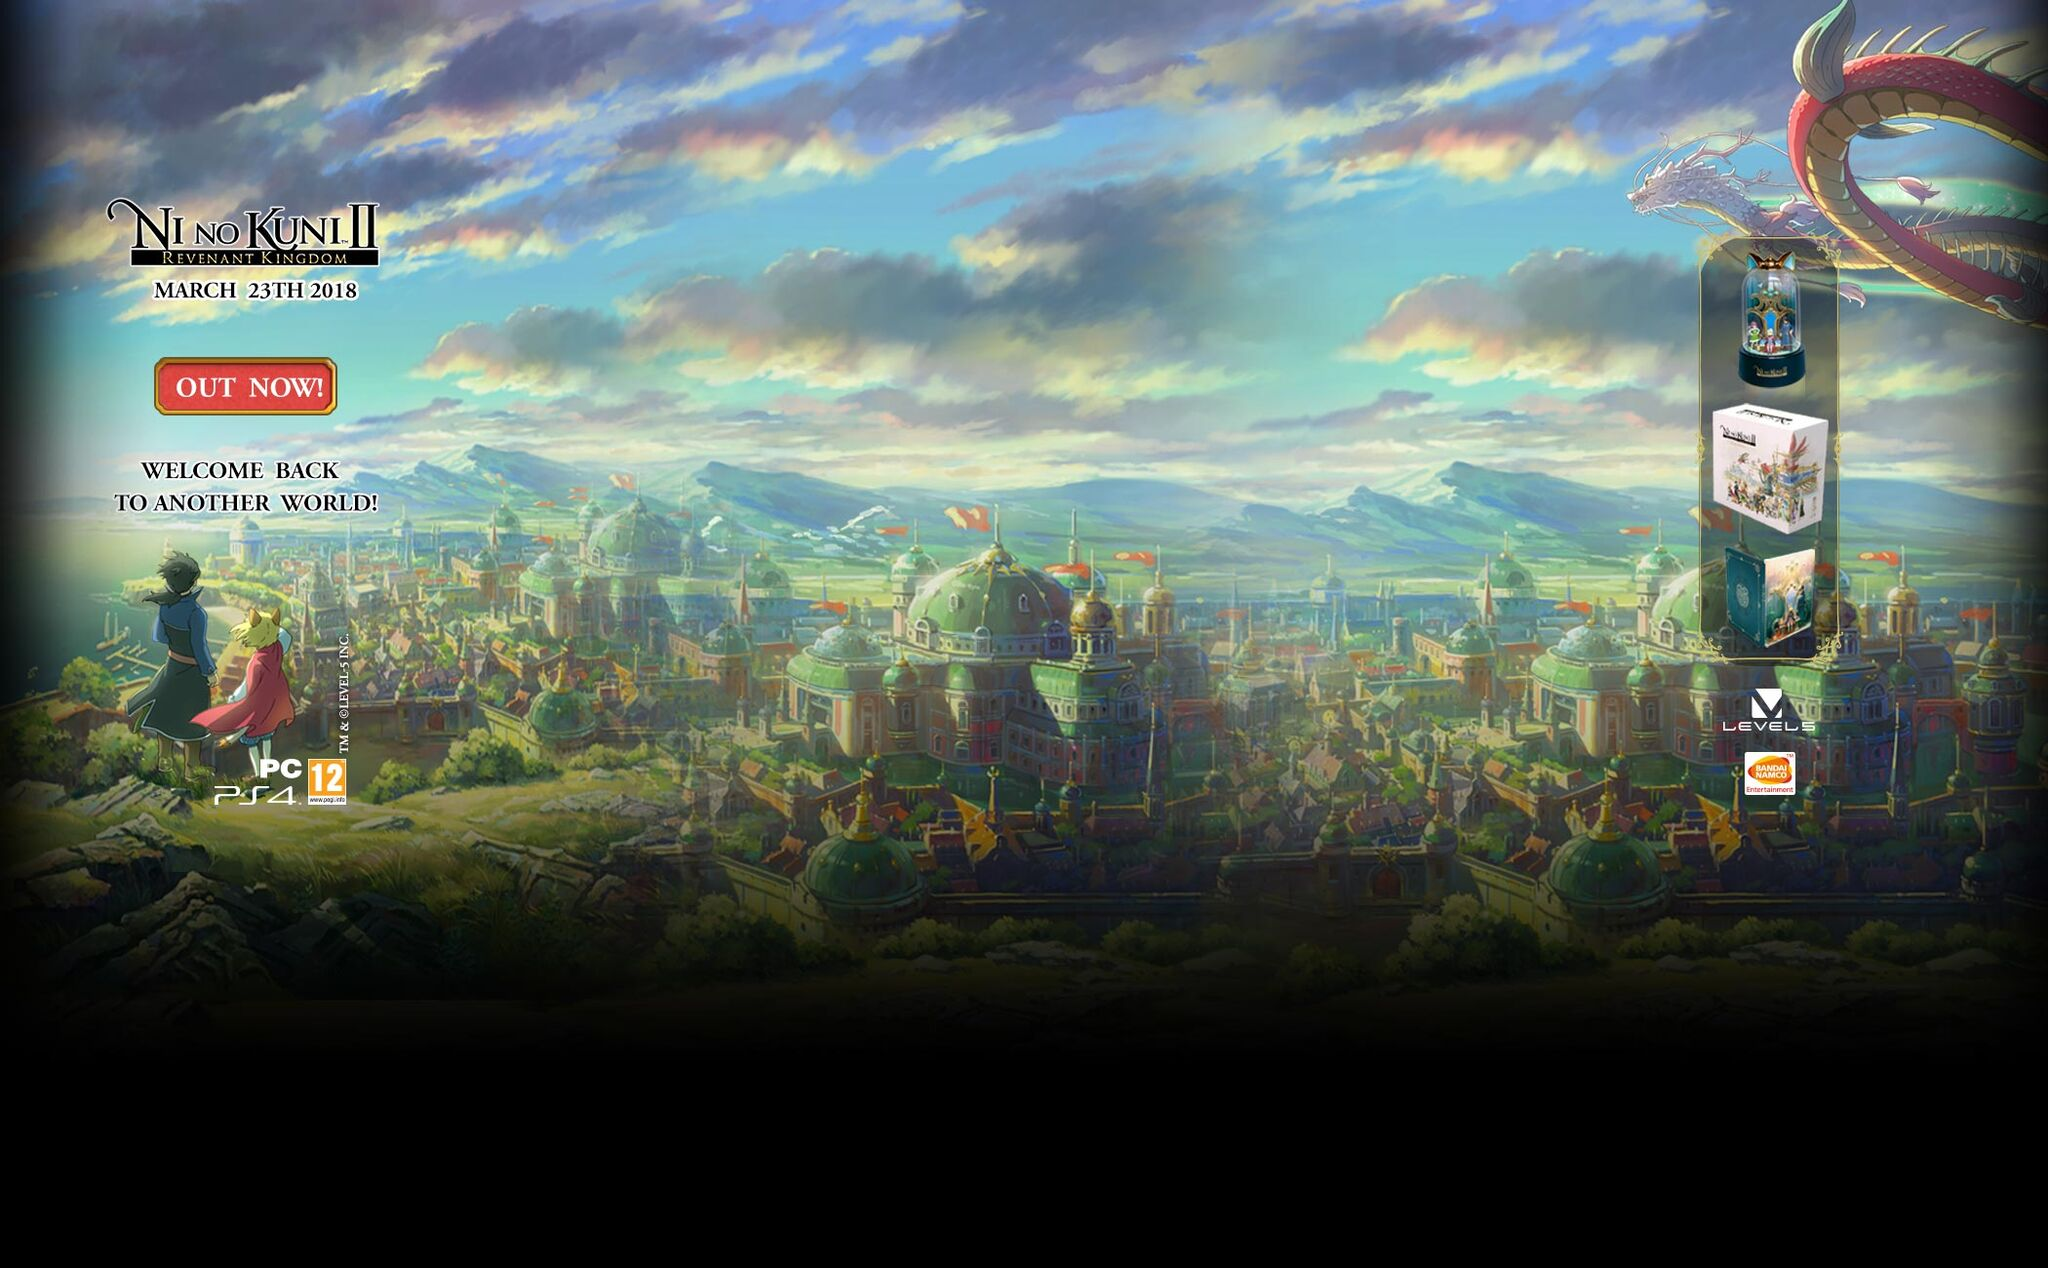 Background Skin Ad (Bandai Namco) - Ni No Kuni 2